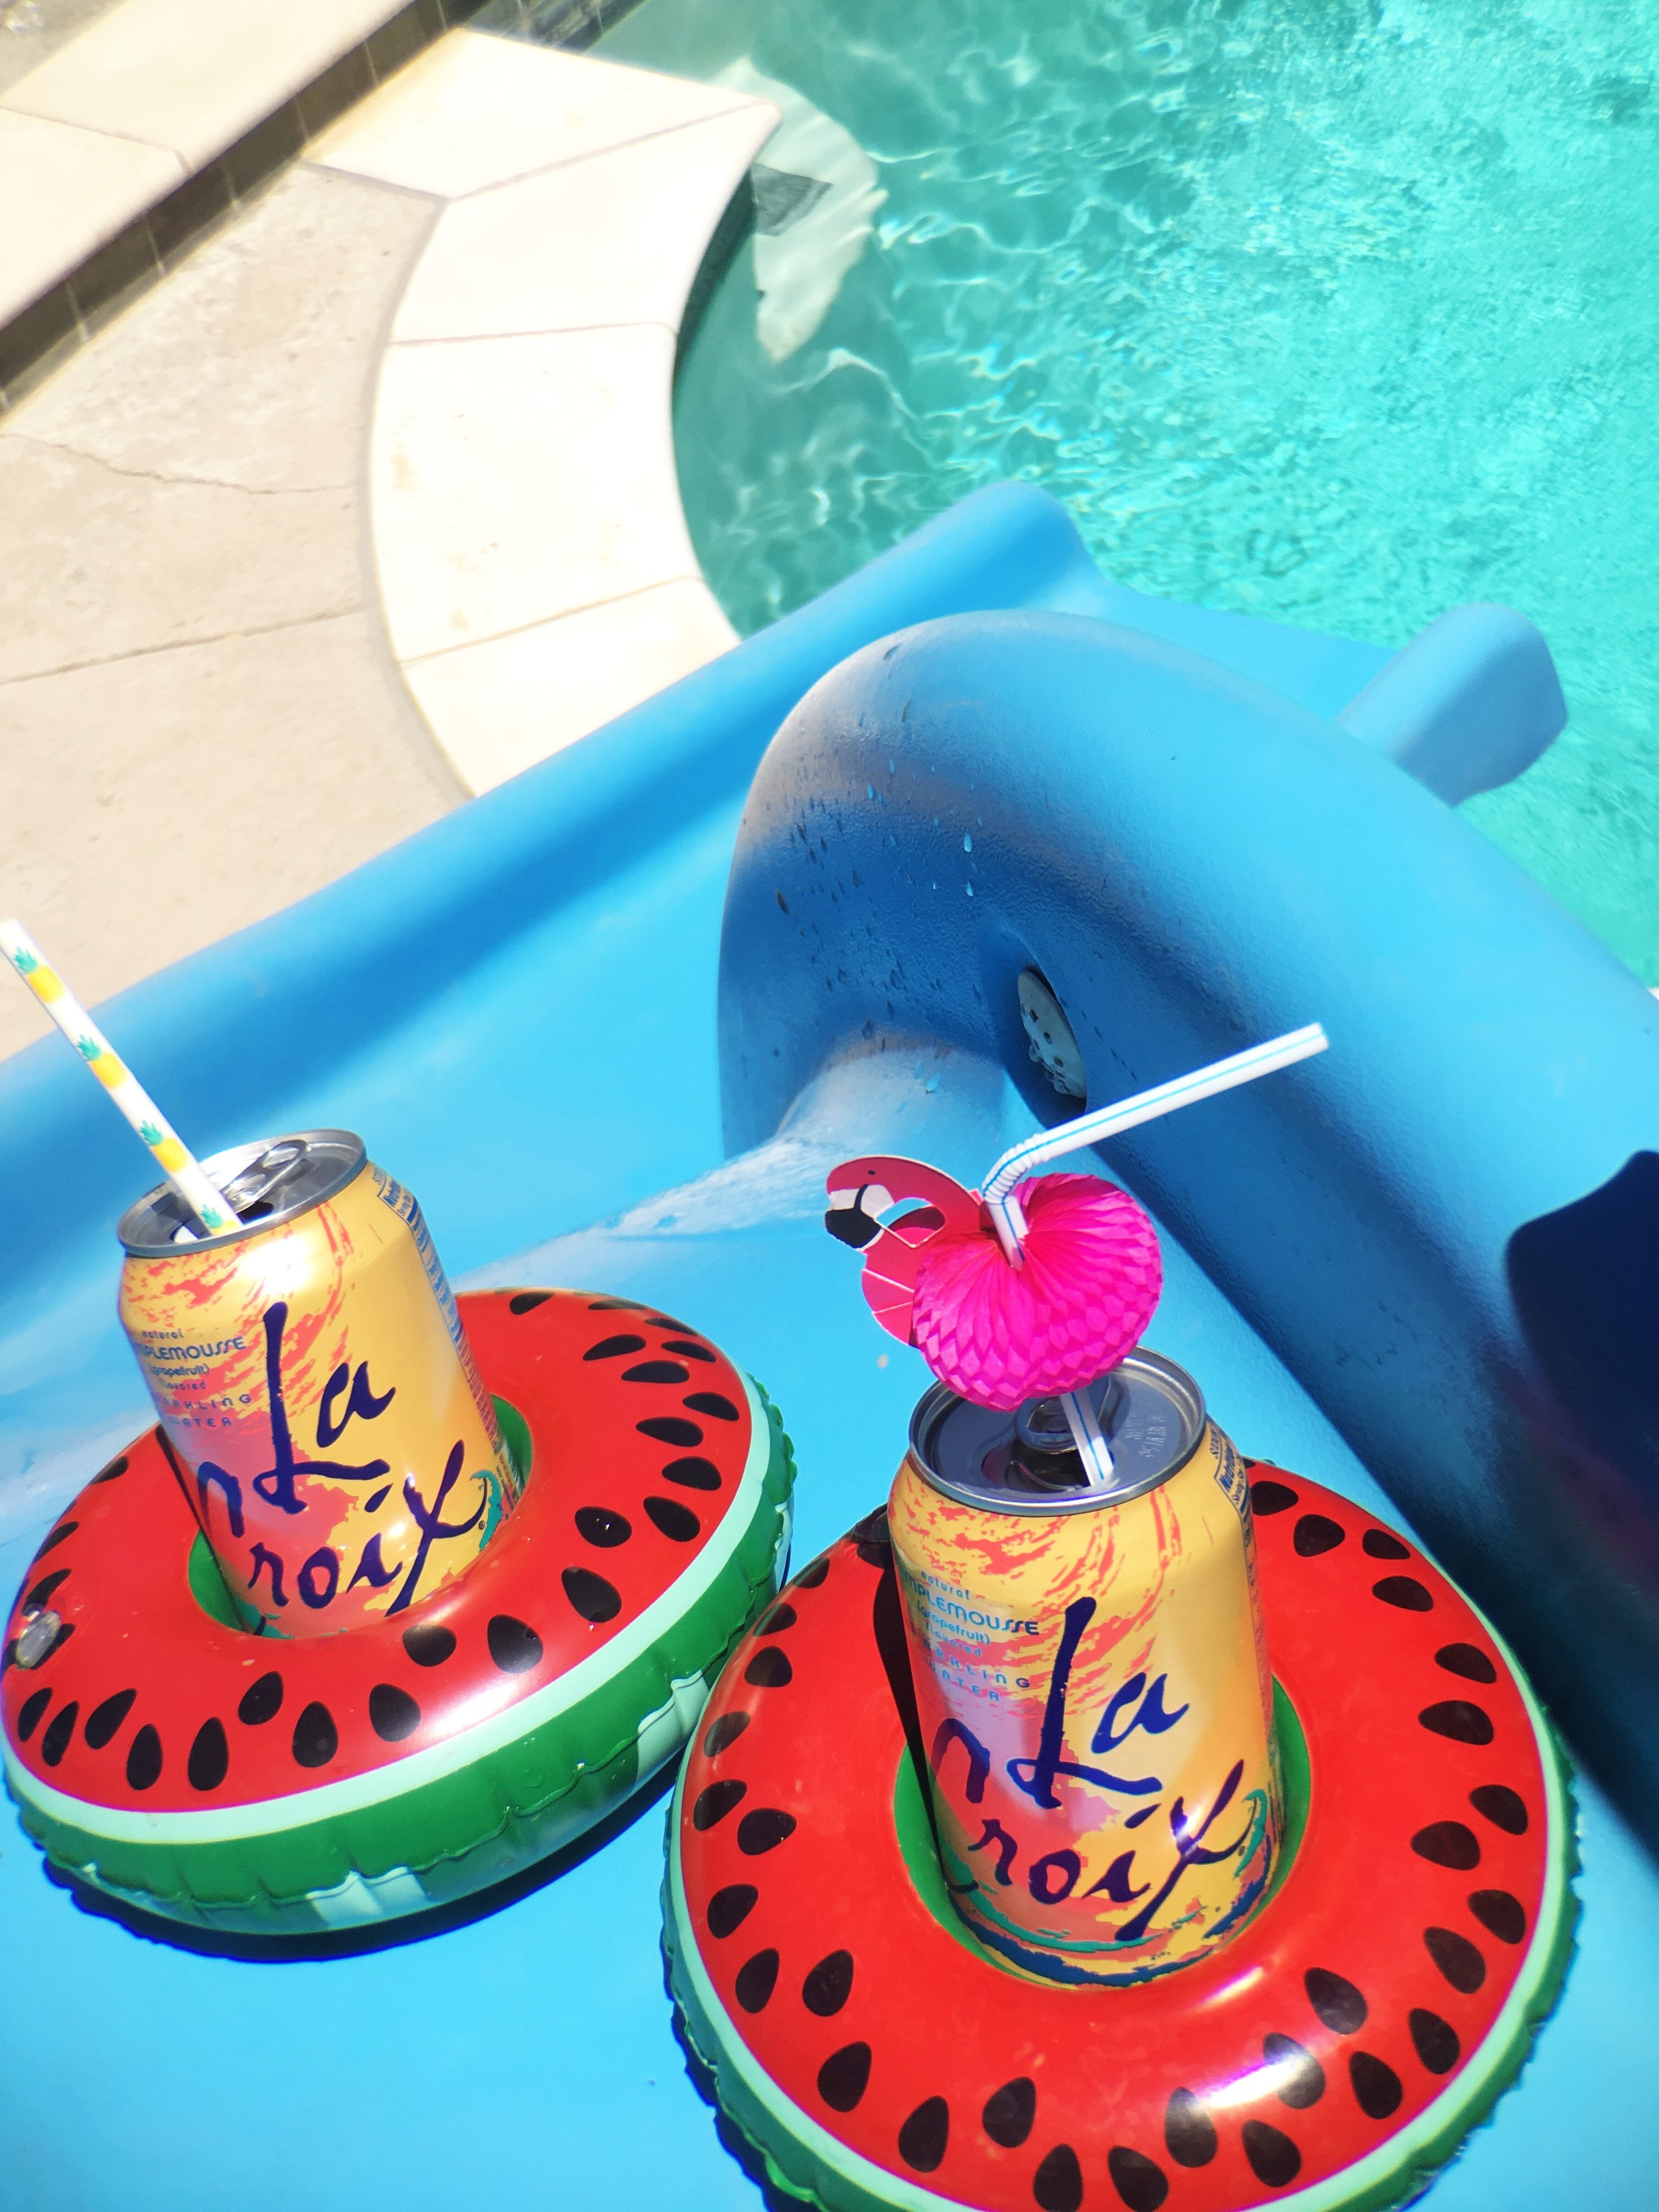 Pool Waterslide and Big Mouth Drink Floats